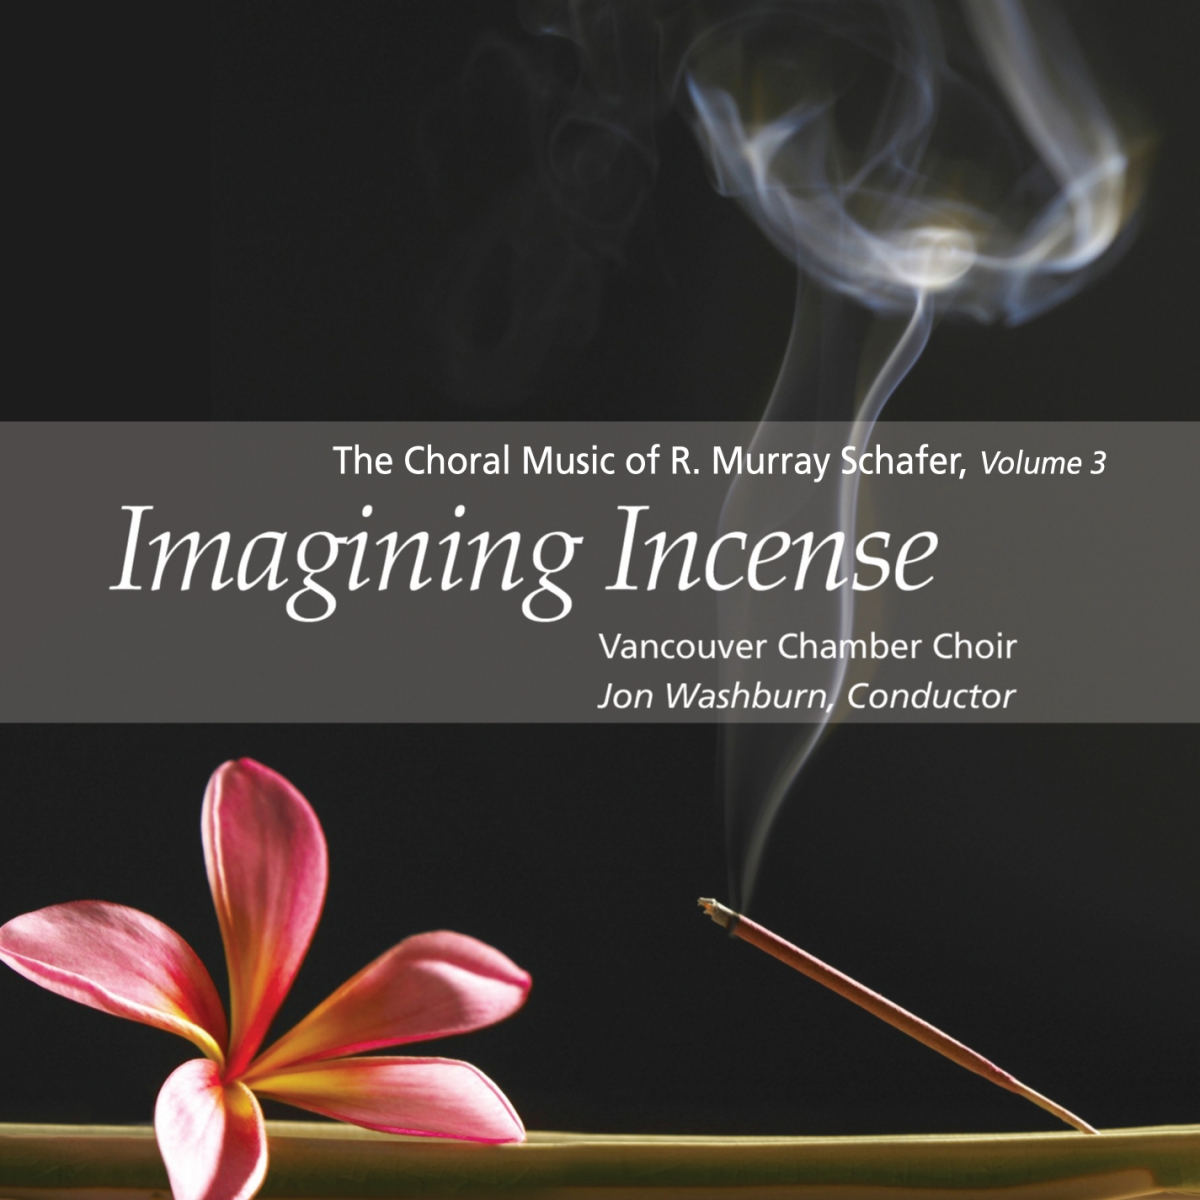 Imagining Incense